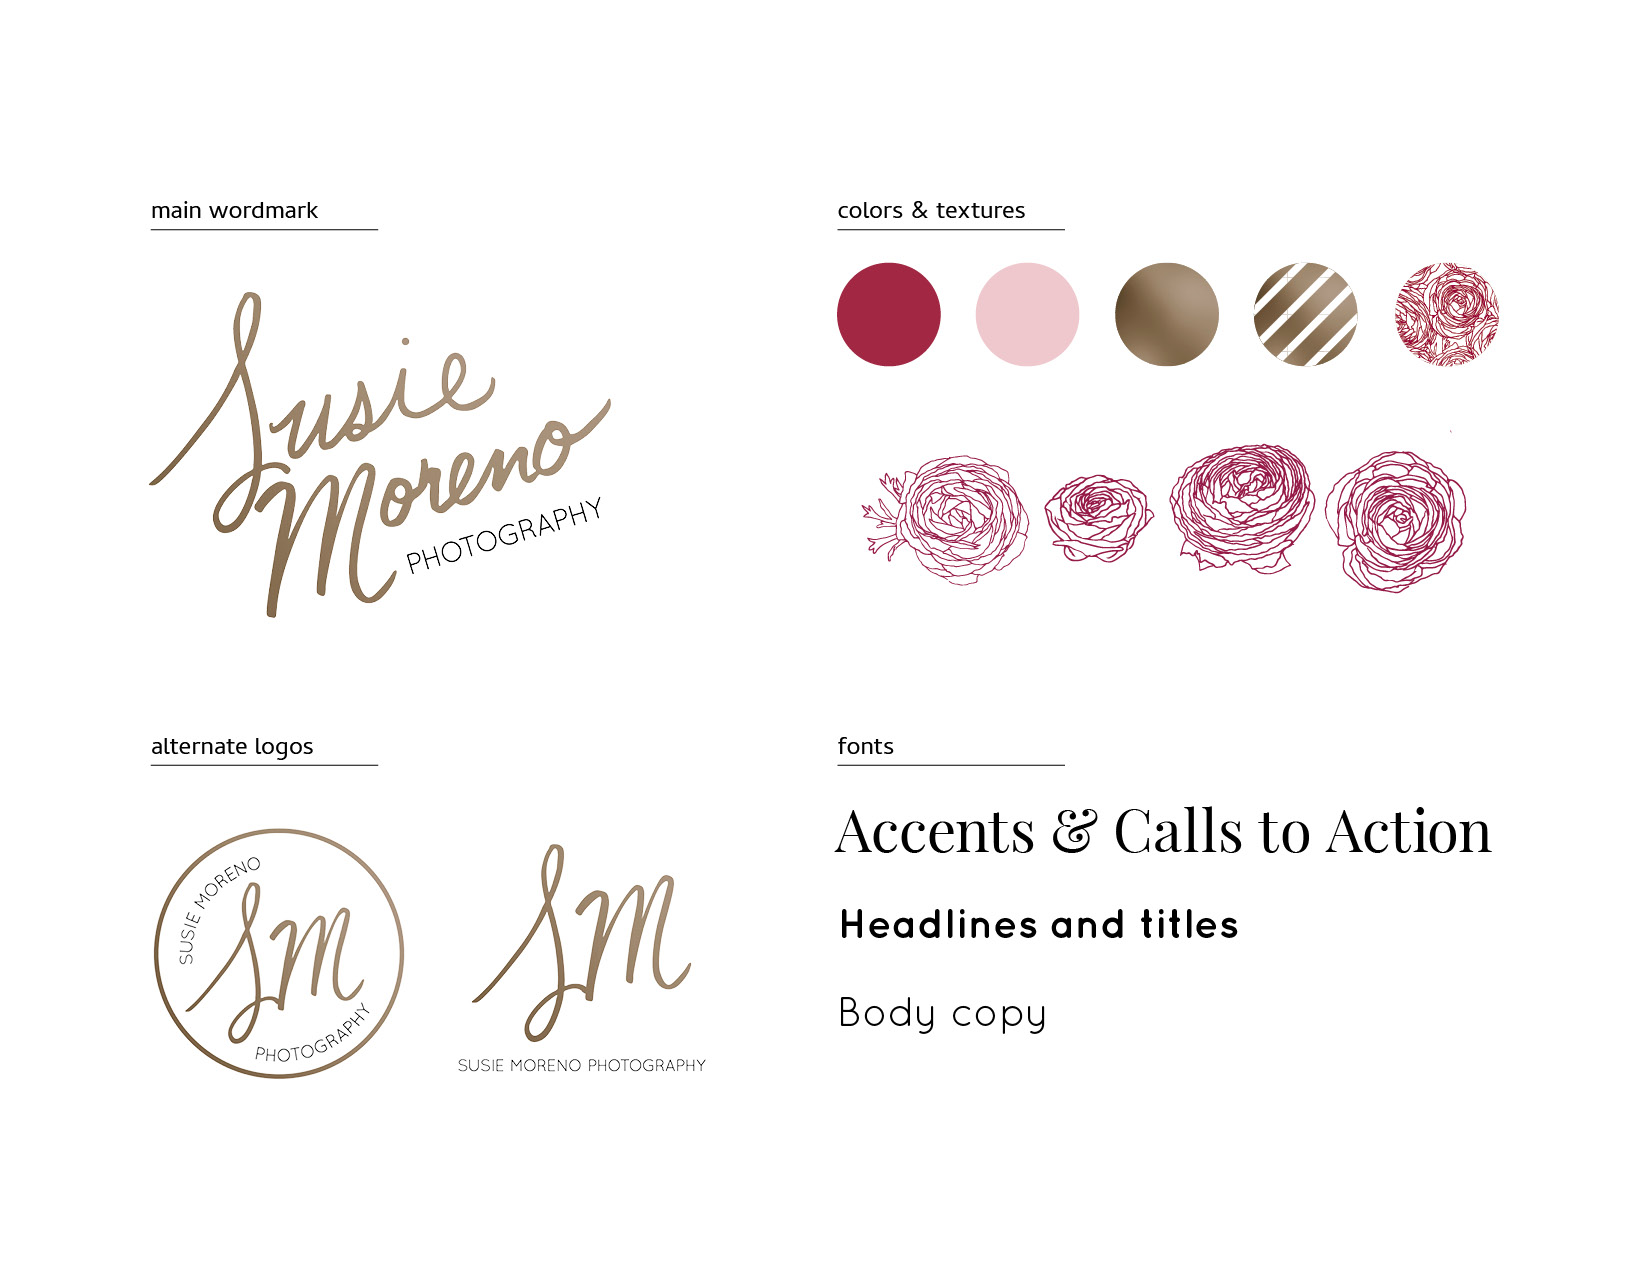 Susie Moreno Photography Case Study Logo & Supporting Elements